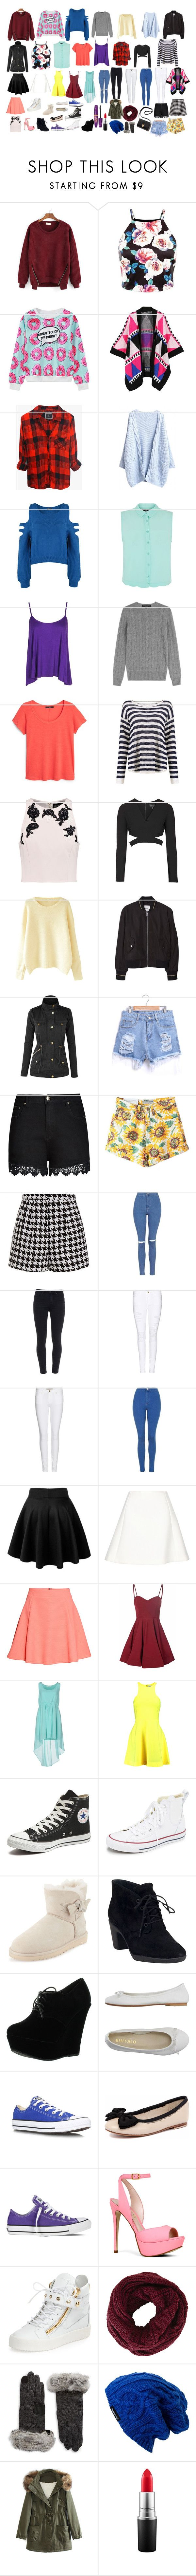 """Untitled #47"" by melstar101 ❤ liked on Polyvore featuring WithChic, Rails, WearAll, Boohoo, Ralph Lauren Black Label, MANGO, NOIR Sachin + Babi, Topshop, City Chic and Emma Cook"